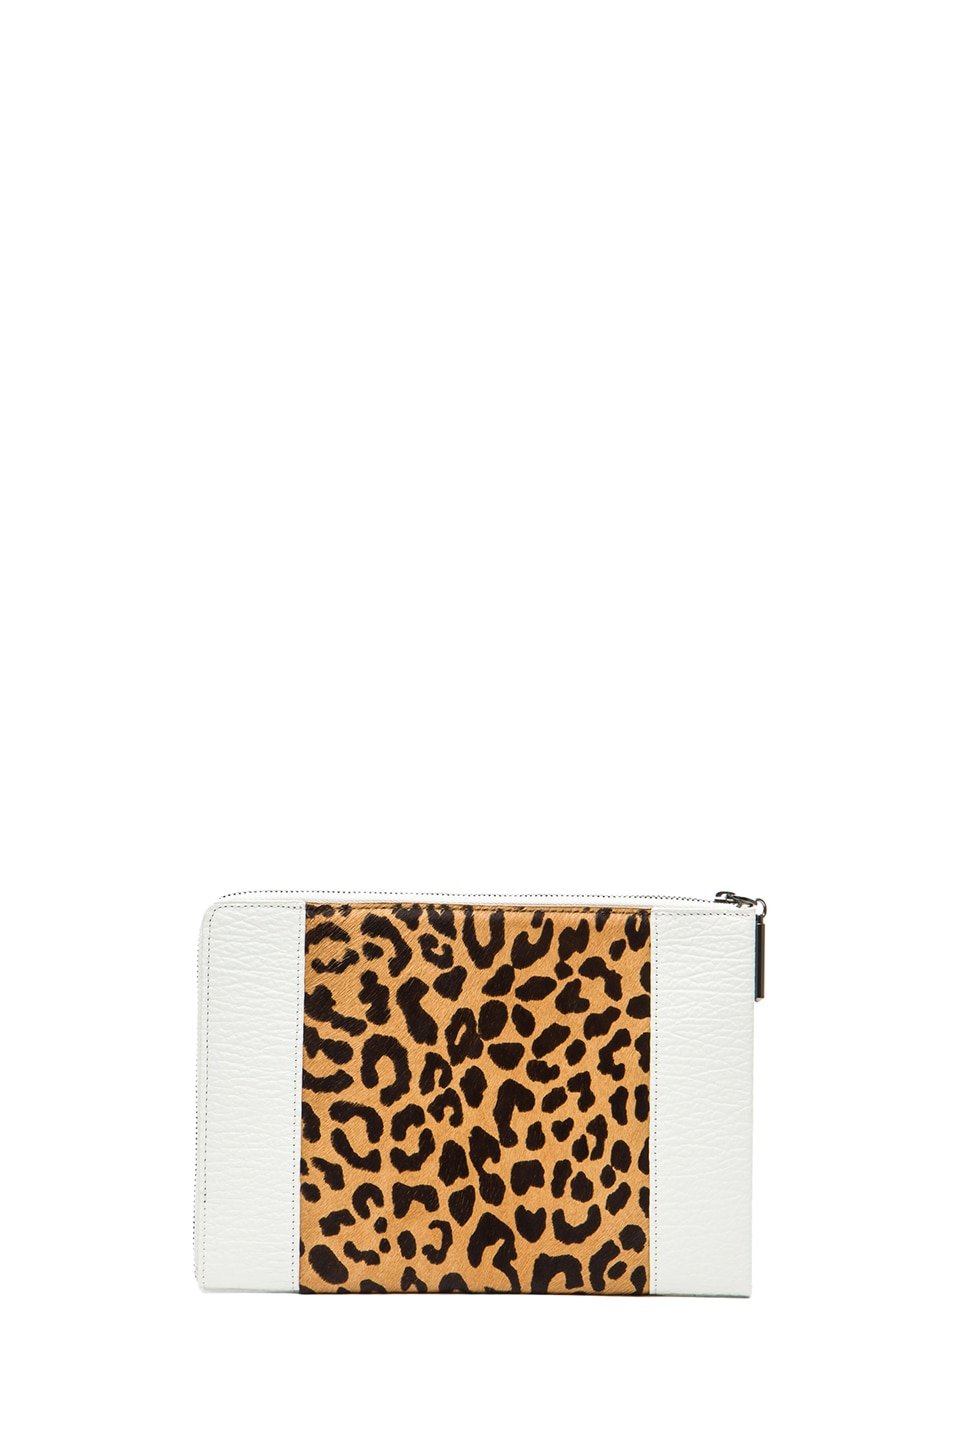 Image 2 of 3.1 phillip lim Flat Zip in Natural Leopard